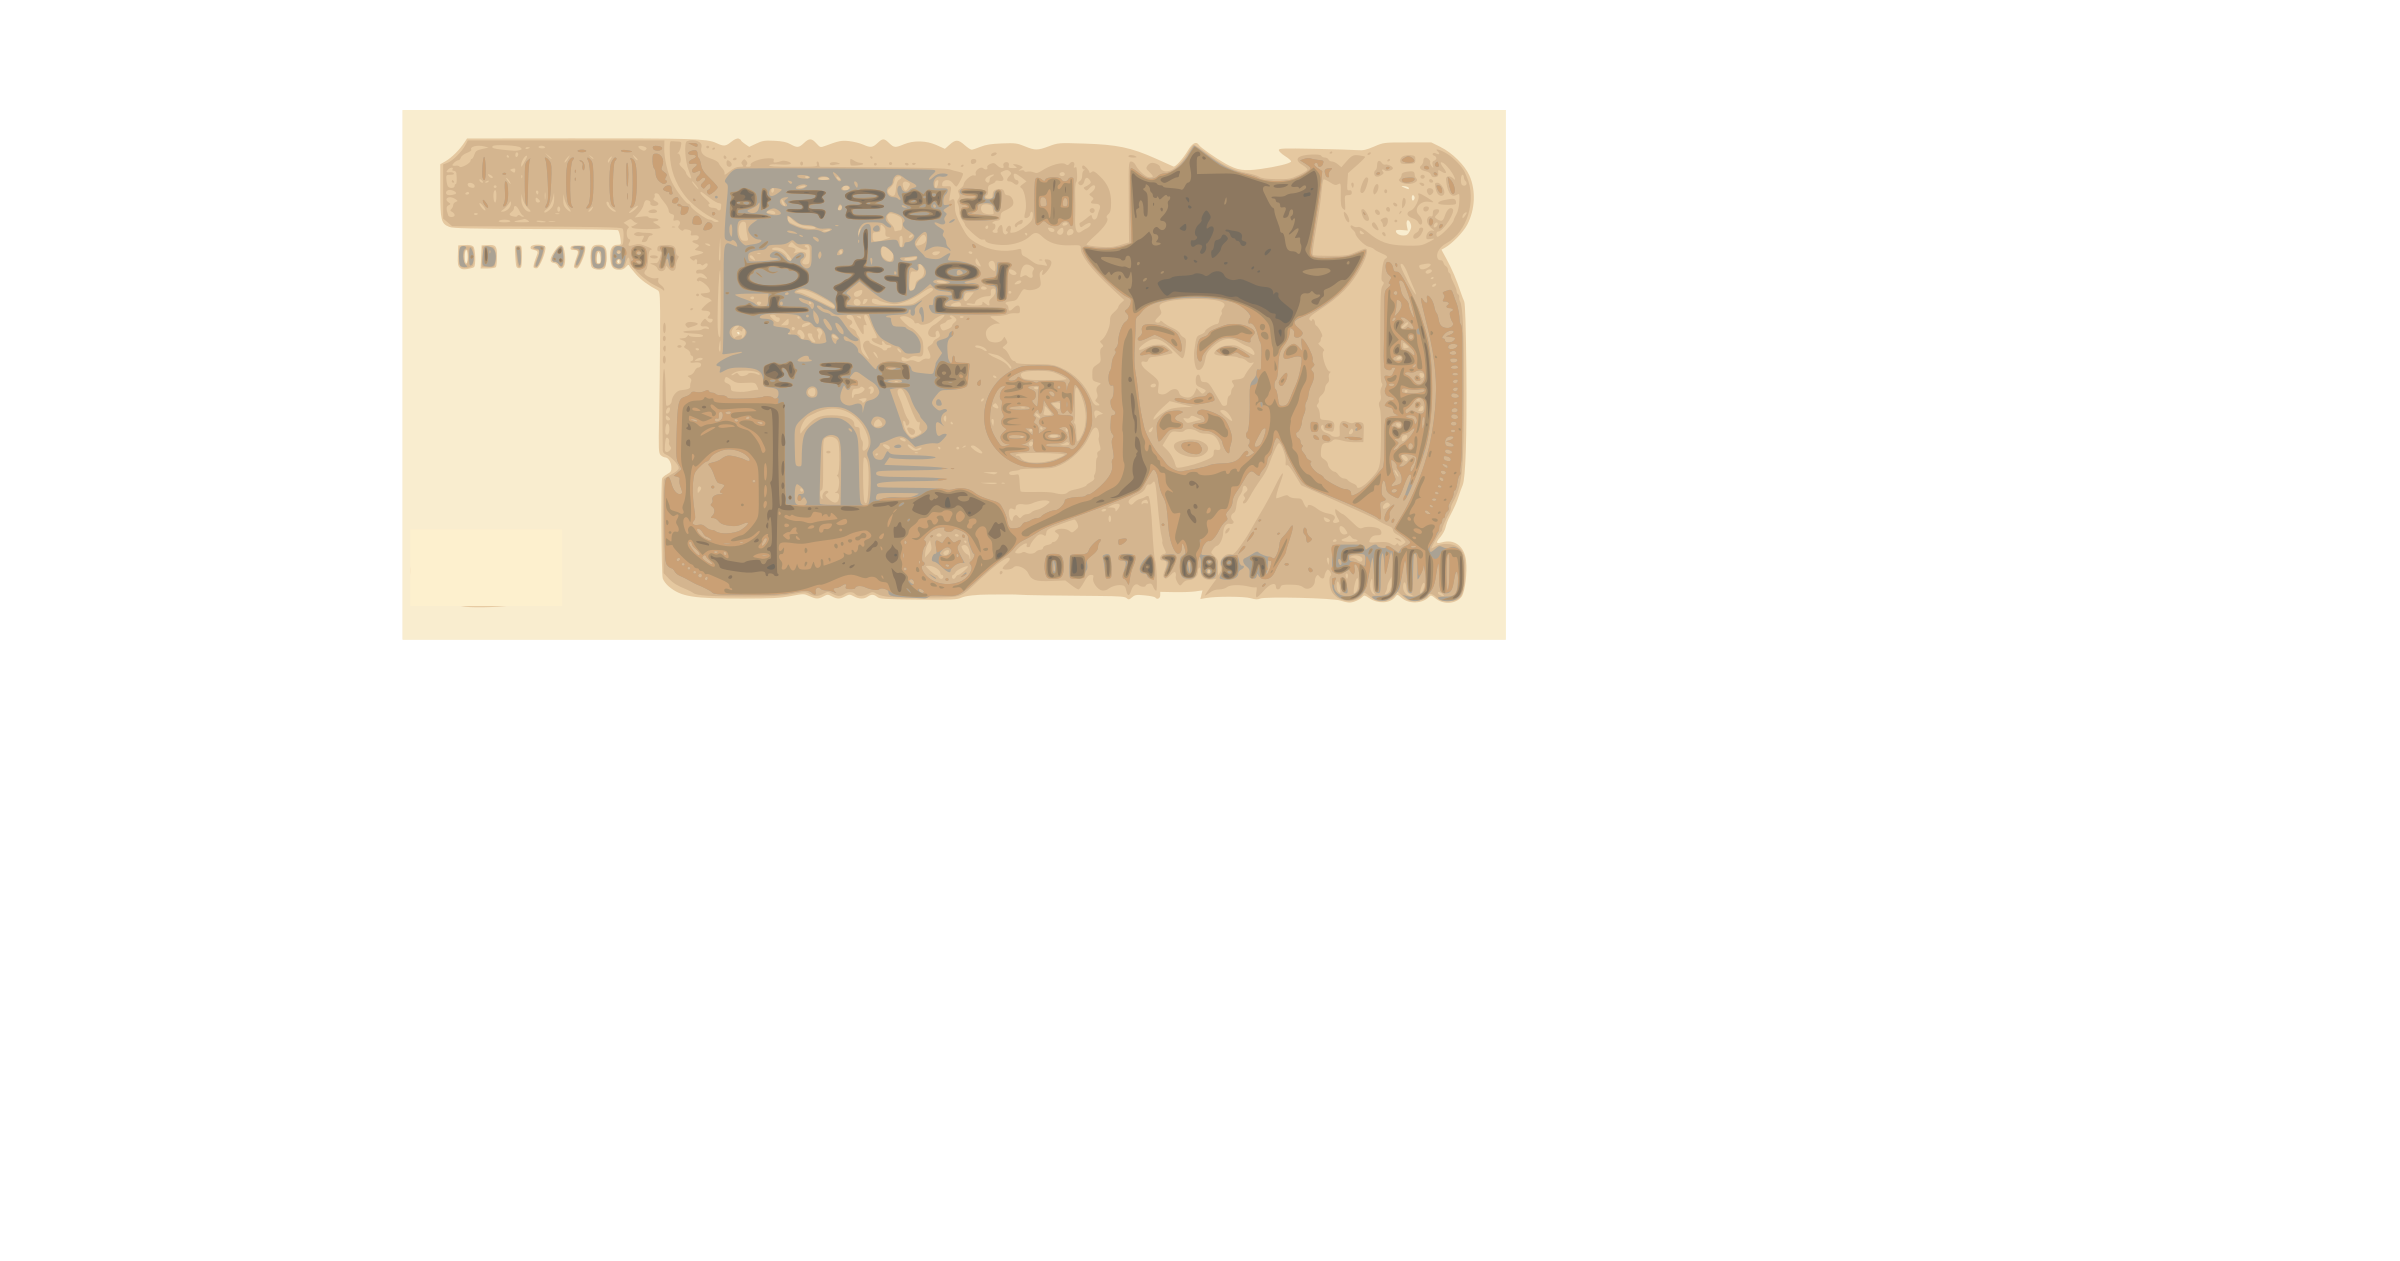 Money front clipart banner stock Clipart - korean money 5000won front view banner stock